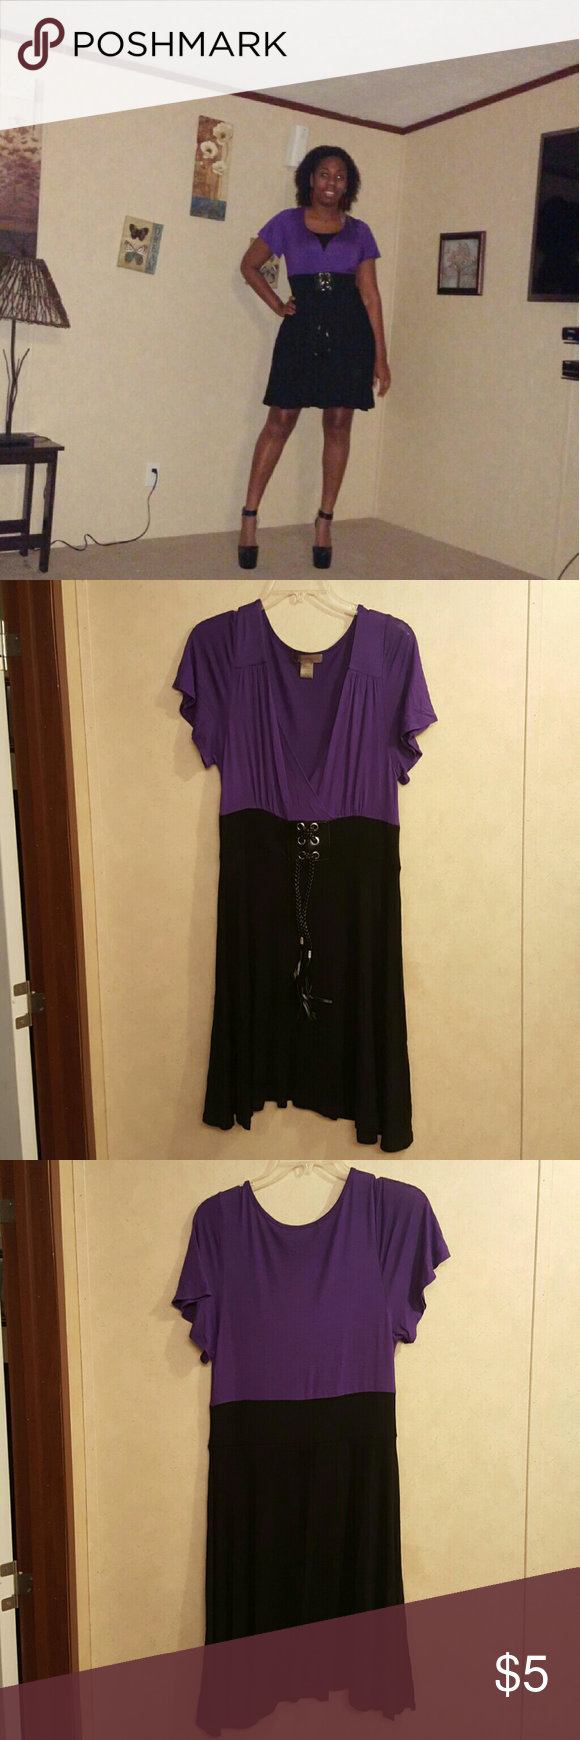 Black and Purple Dress Worn once. Material is light and comfy. Has flutter sleeves. Dresses Mini